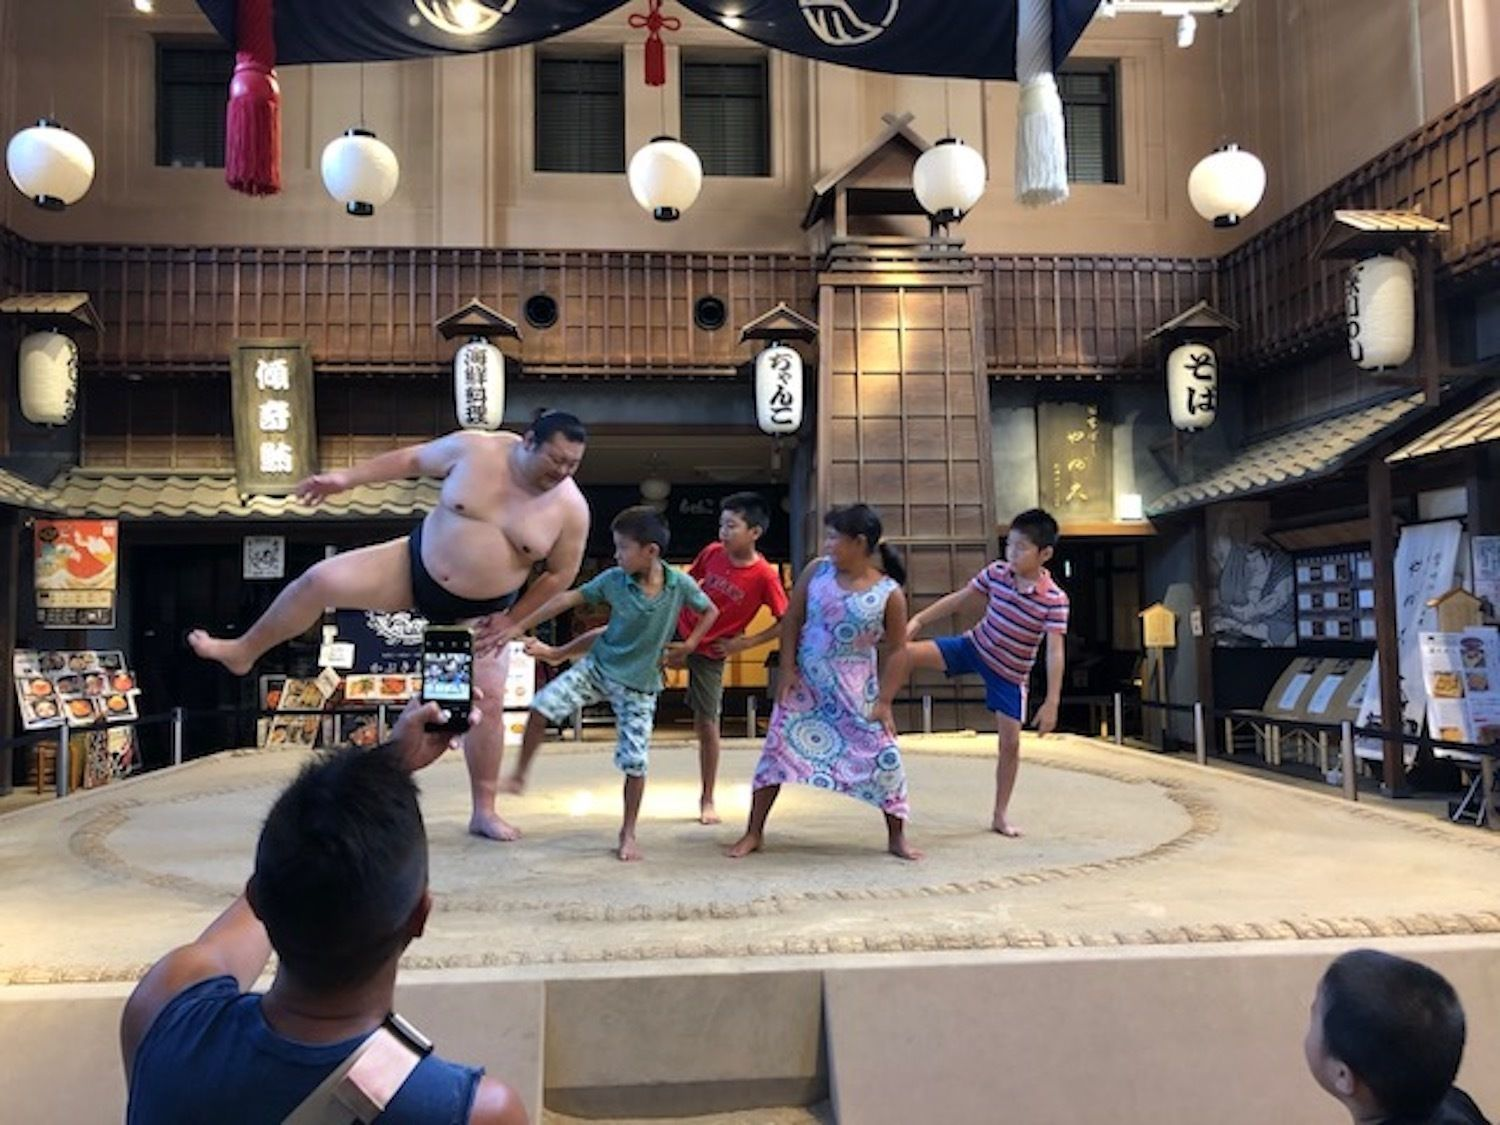 Wrestle with a Sumo Wrestler on Real Sumo Ring in Ryogoku